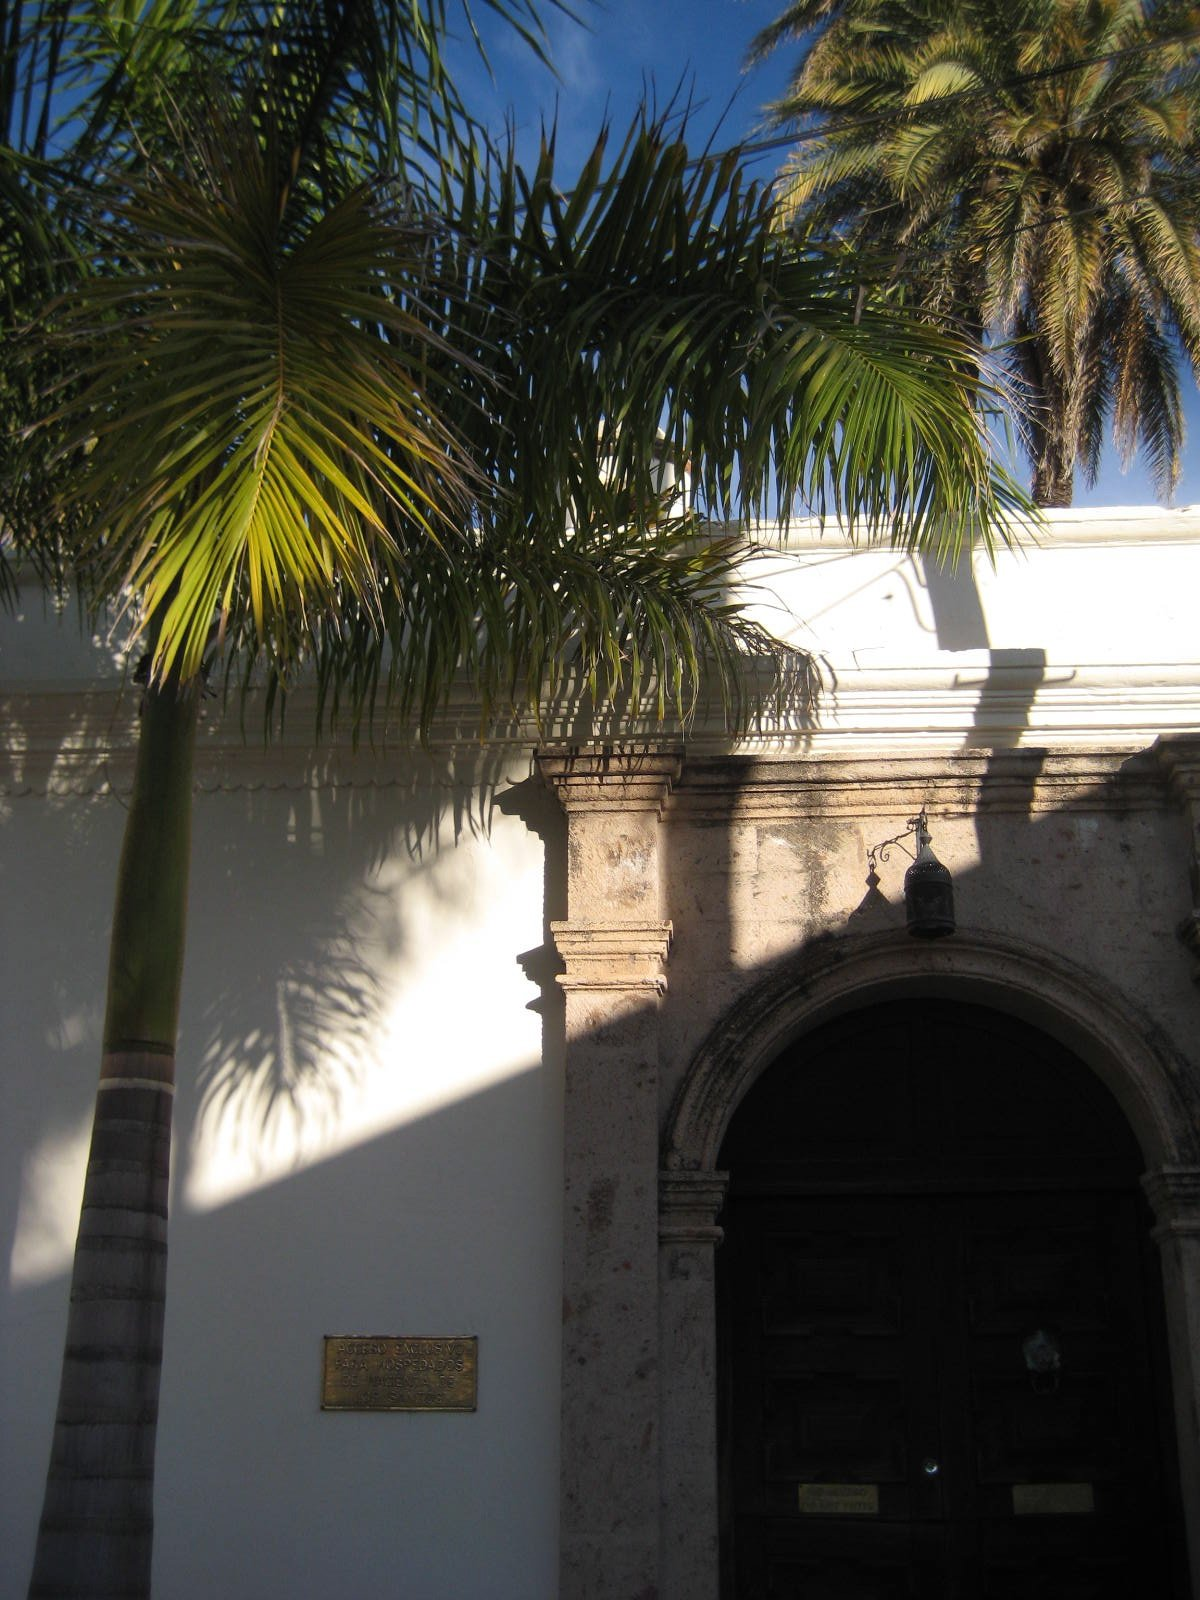 The Beautiful Old Houses of Alamos and a Rufous-Bellied Chachalaca - Mexico Part 3